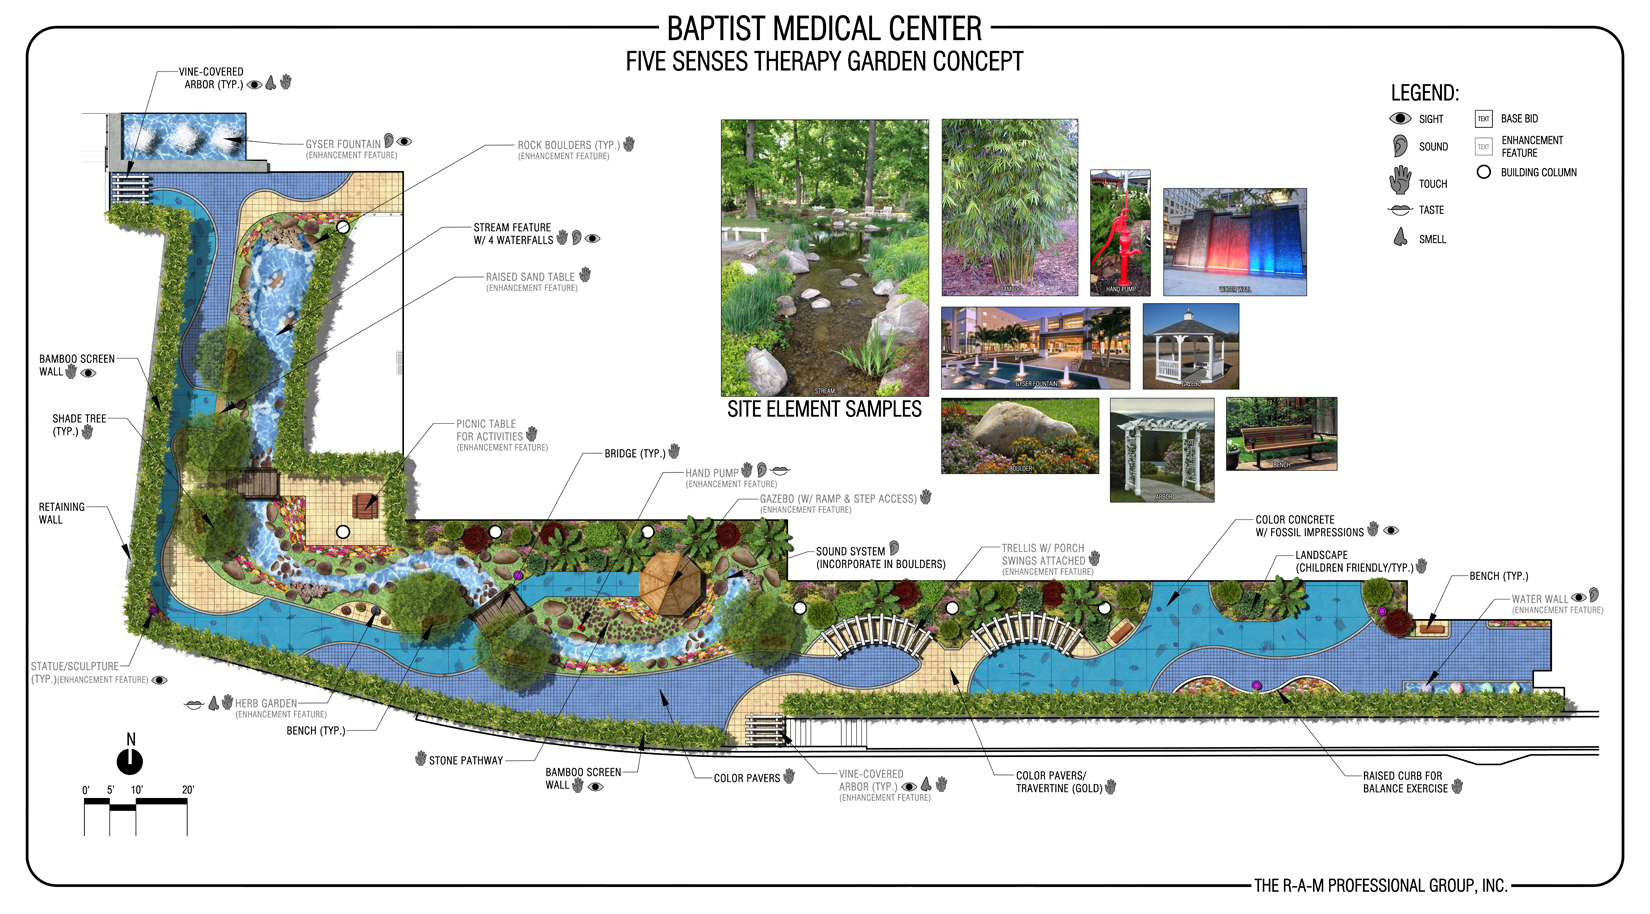 Baptist Medical Center (Wolfson Children's Hospital) Therapy Garden